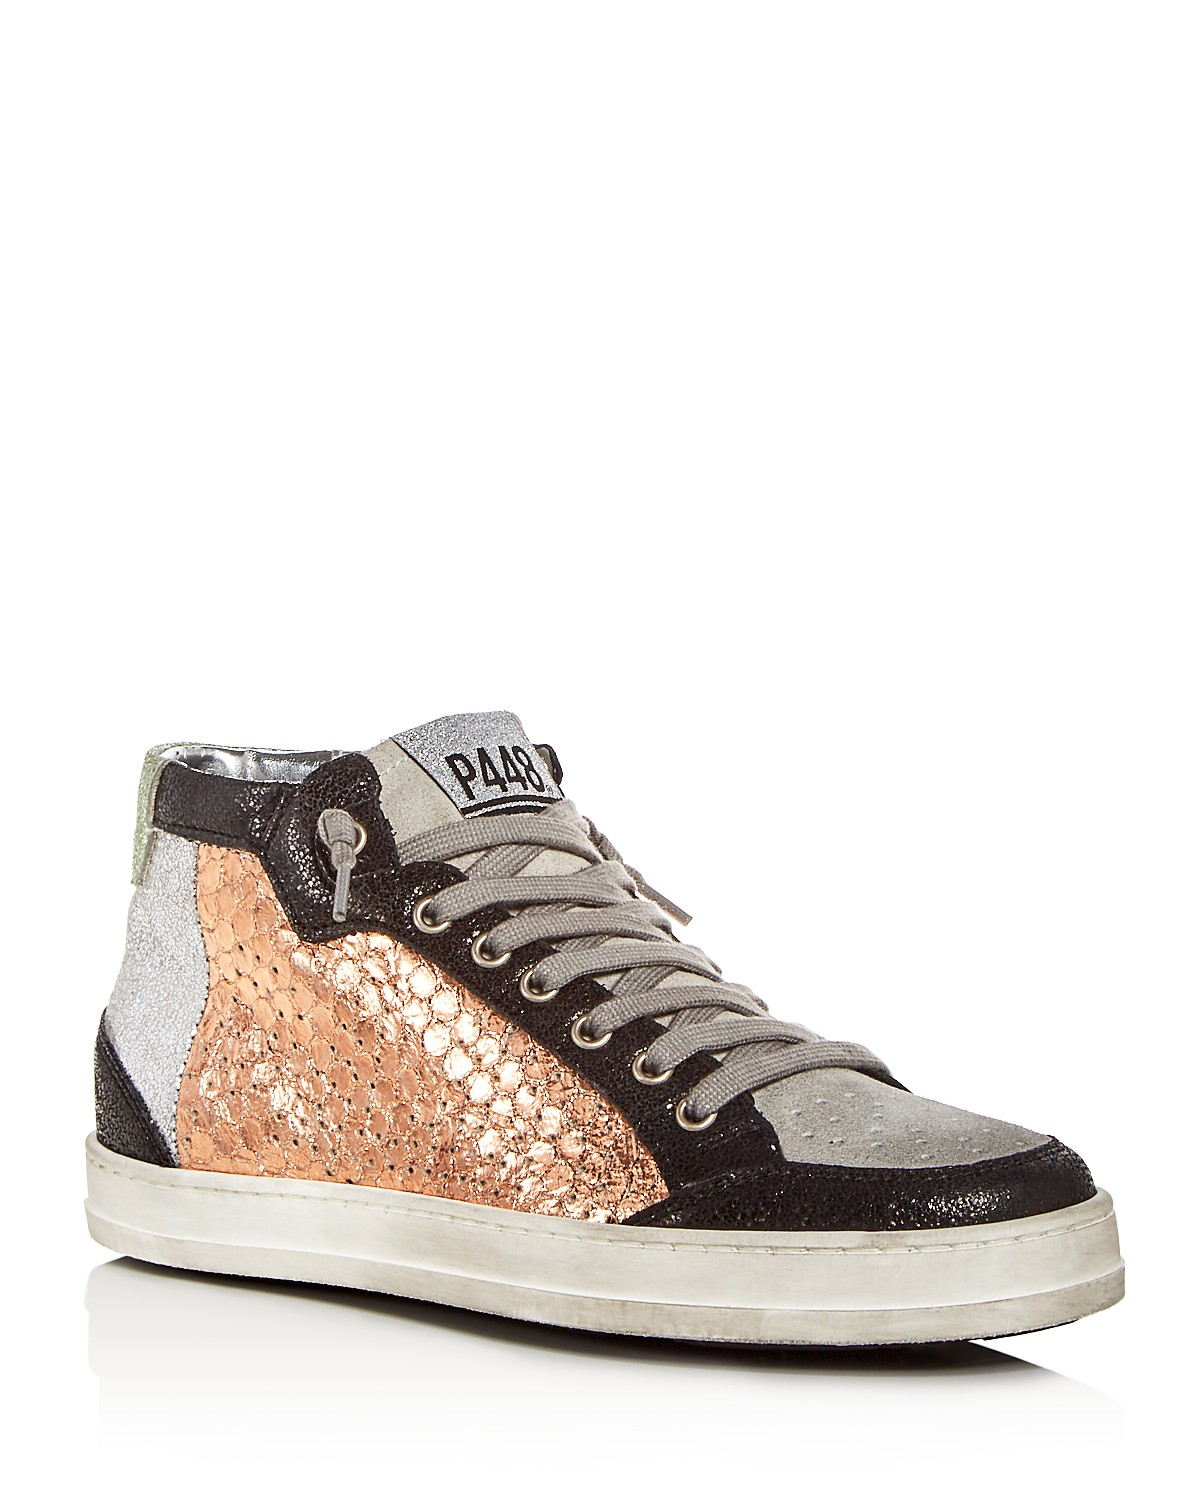 P448 Women's Love Mixed Media Mid Top Sneakers LCgIxkJ